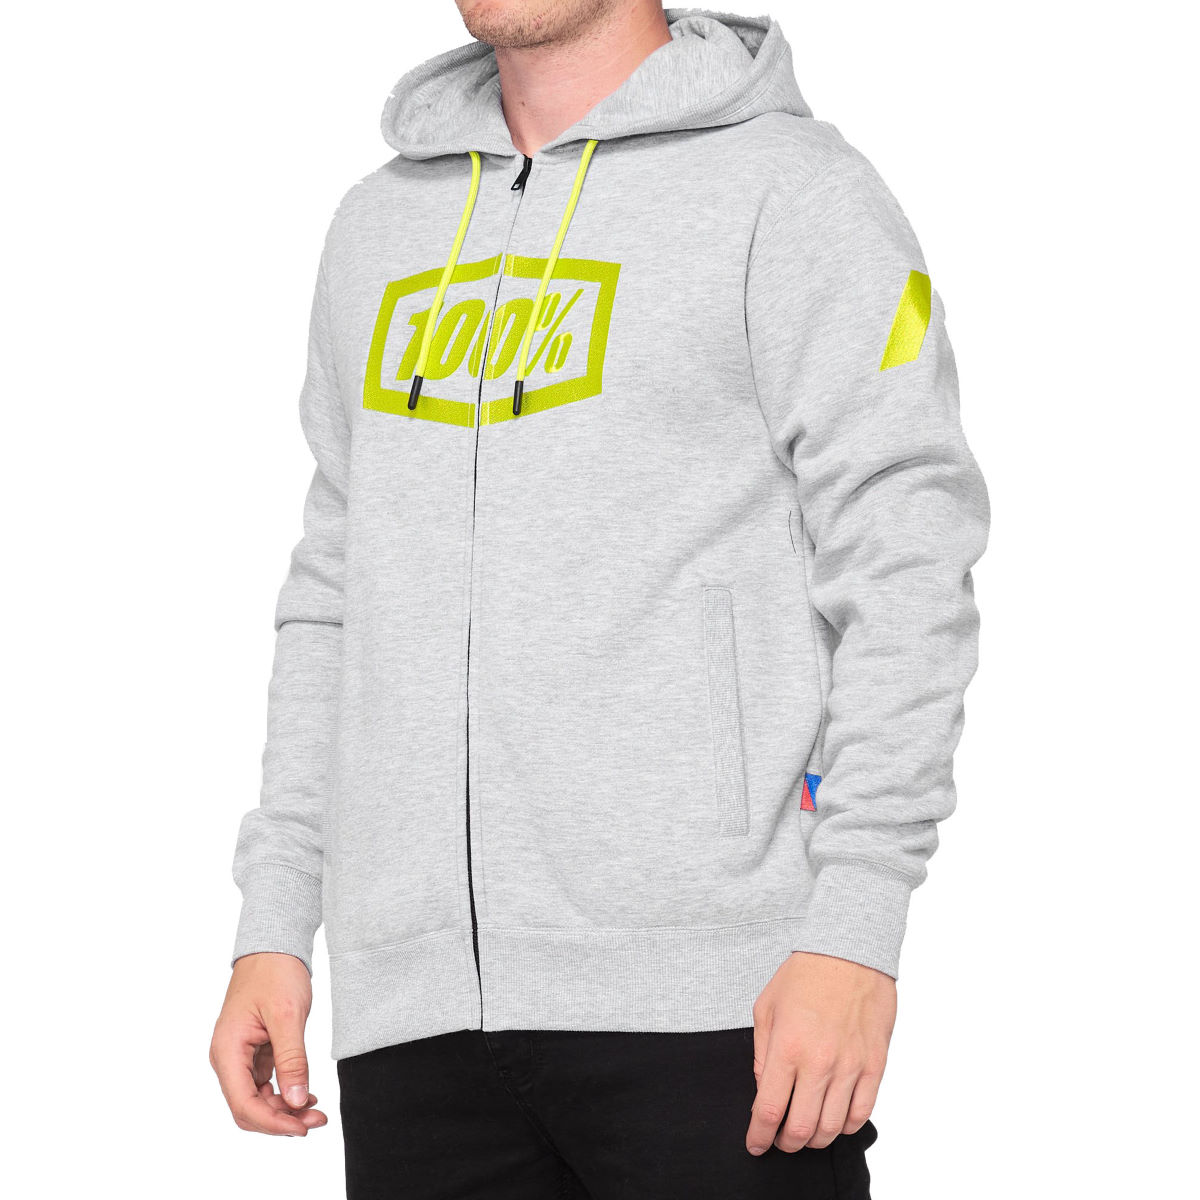 100% Syndicate Zip Hooded Sweatshirt - Xl Grey/yellow  Sweatshirts